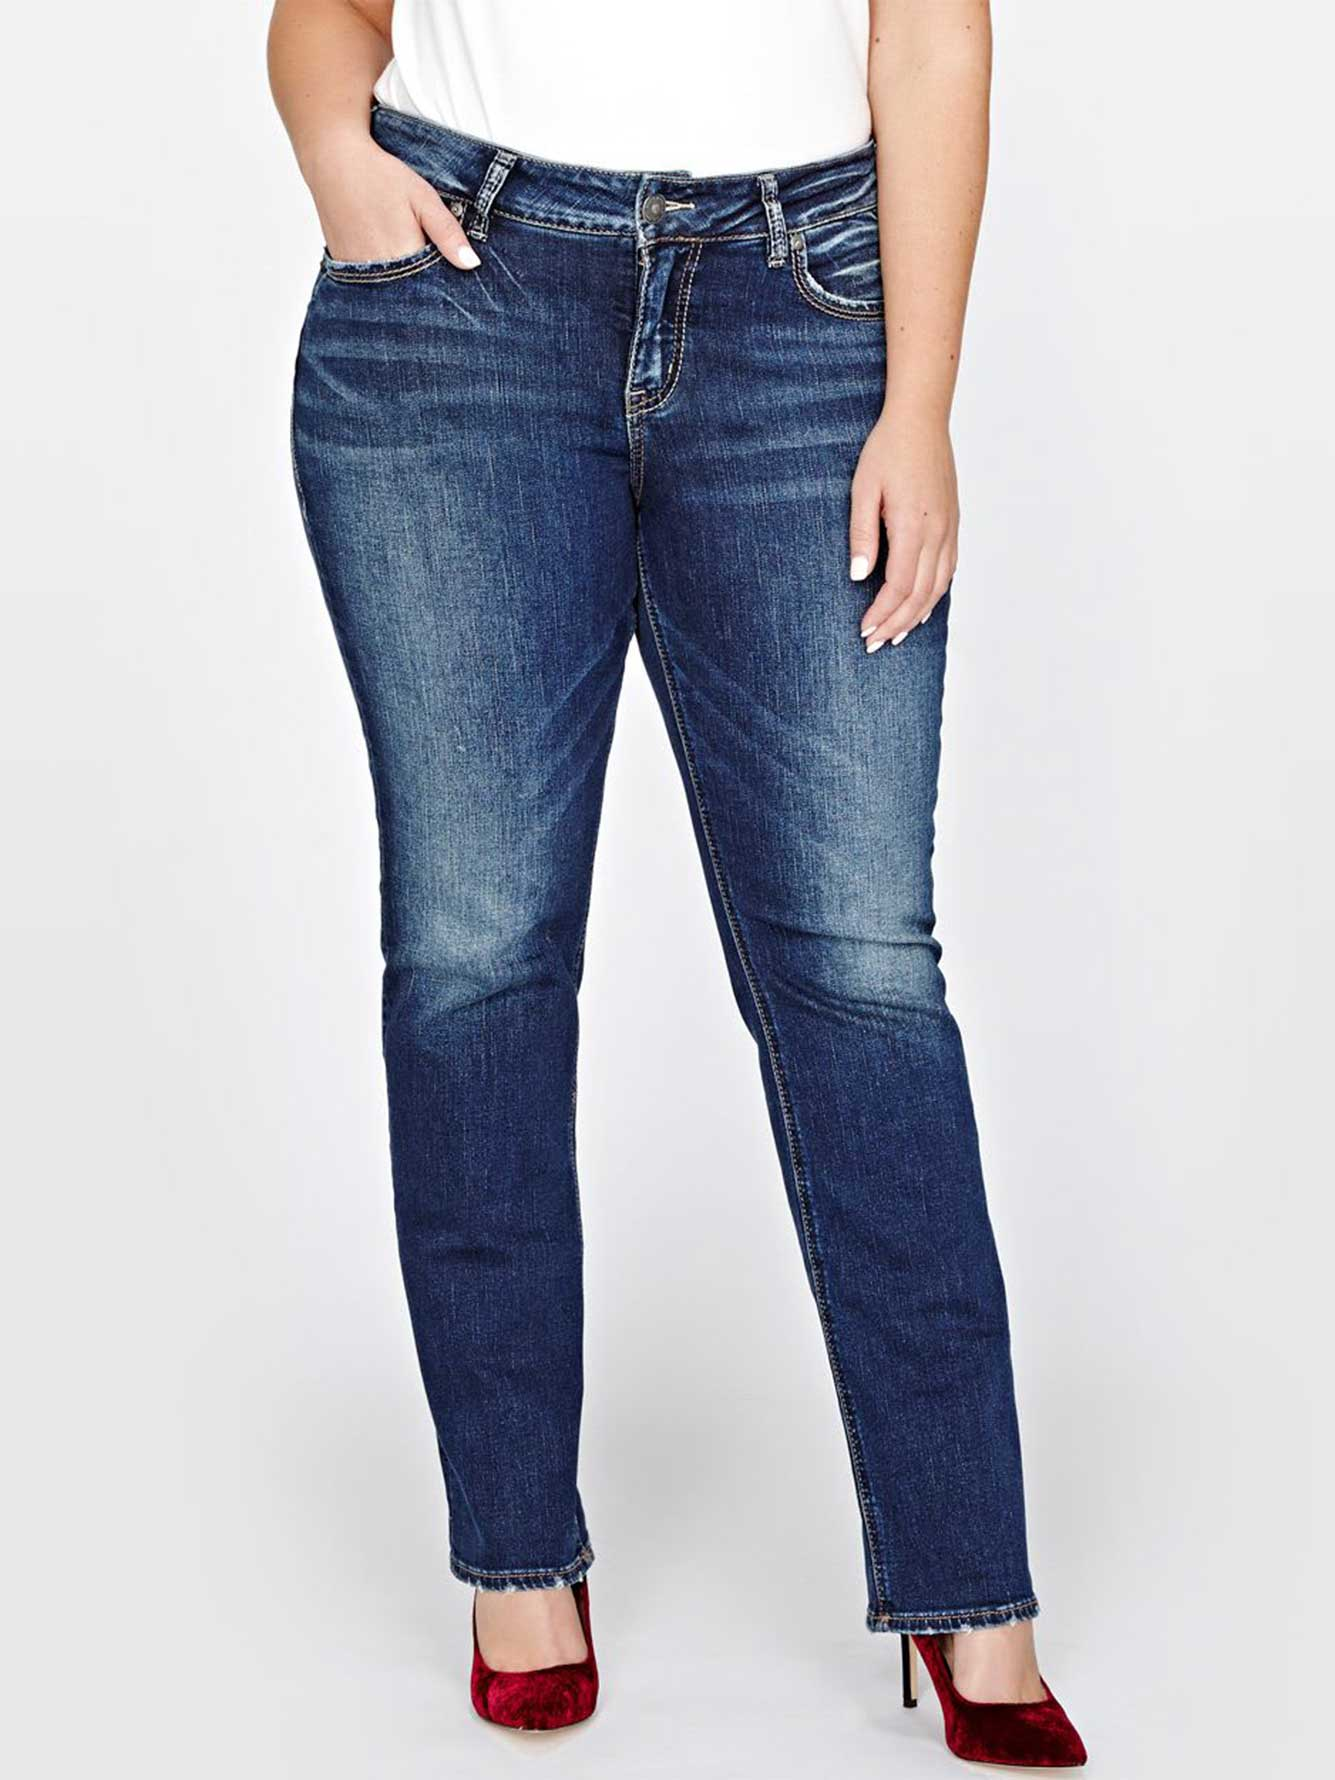 Silver Jeans are some of our best quality jeans and they are so stylish, it's hard to choose just one pair! Looking for some summer jeans? We have light wash Silver .